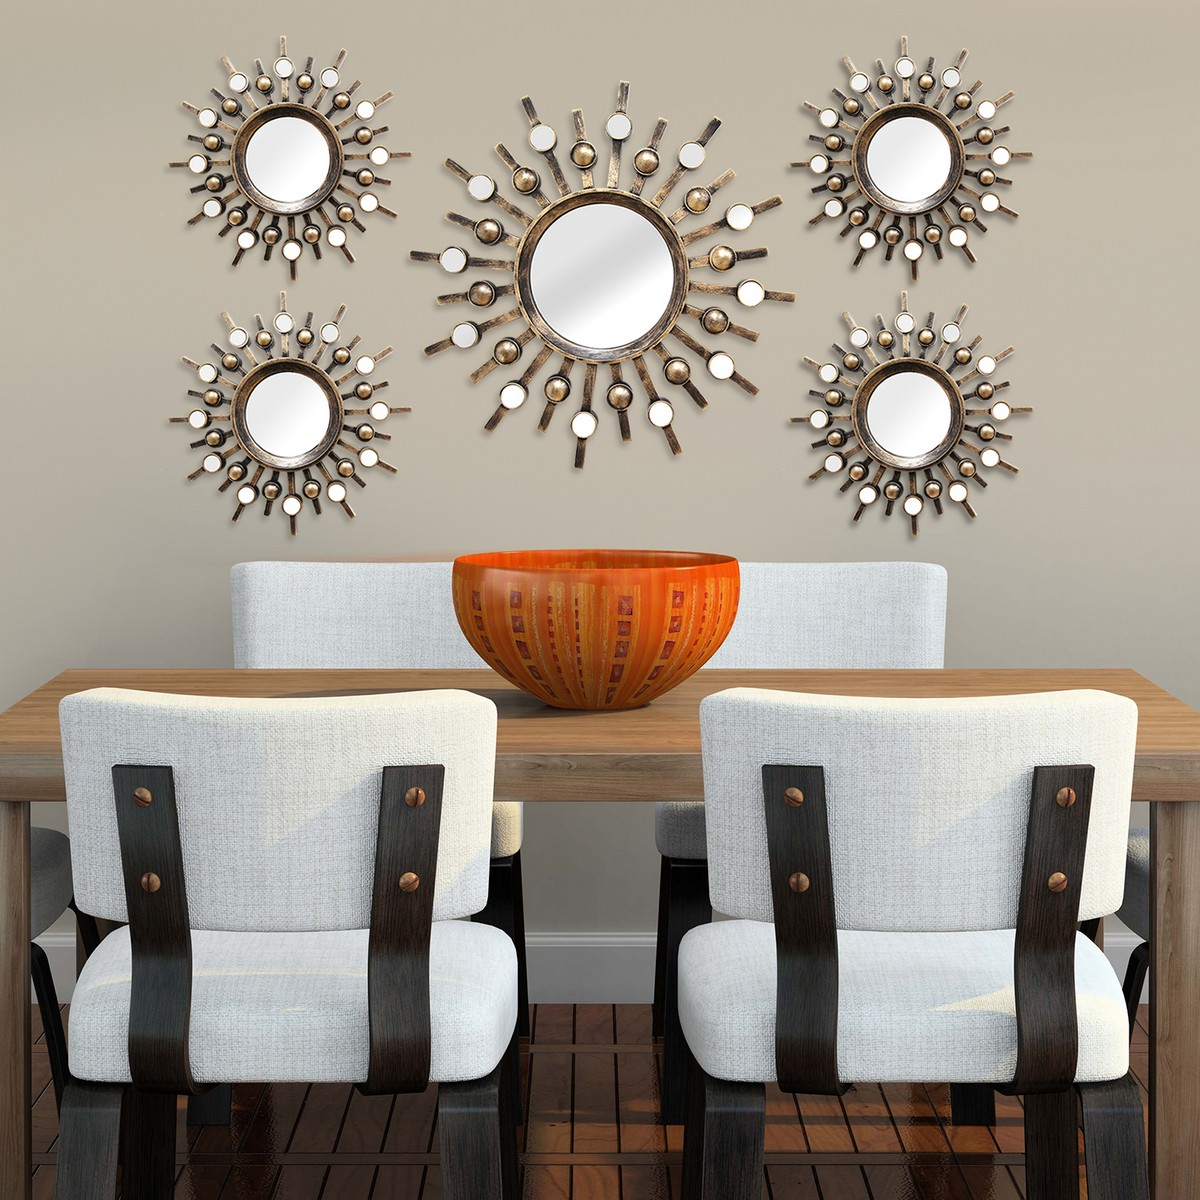 Stratton Home Decor 5 Piece Burst Mirrors - Bronze